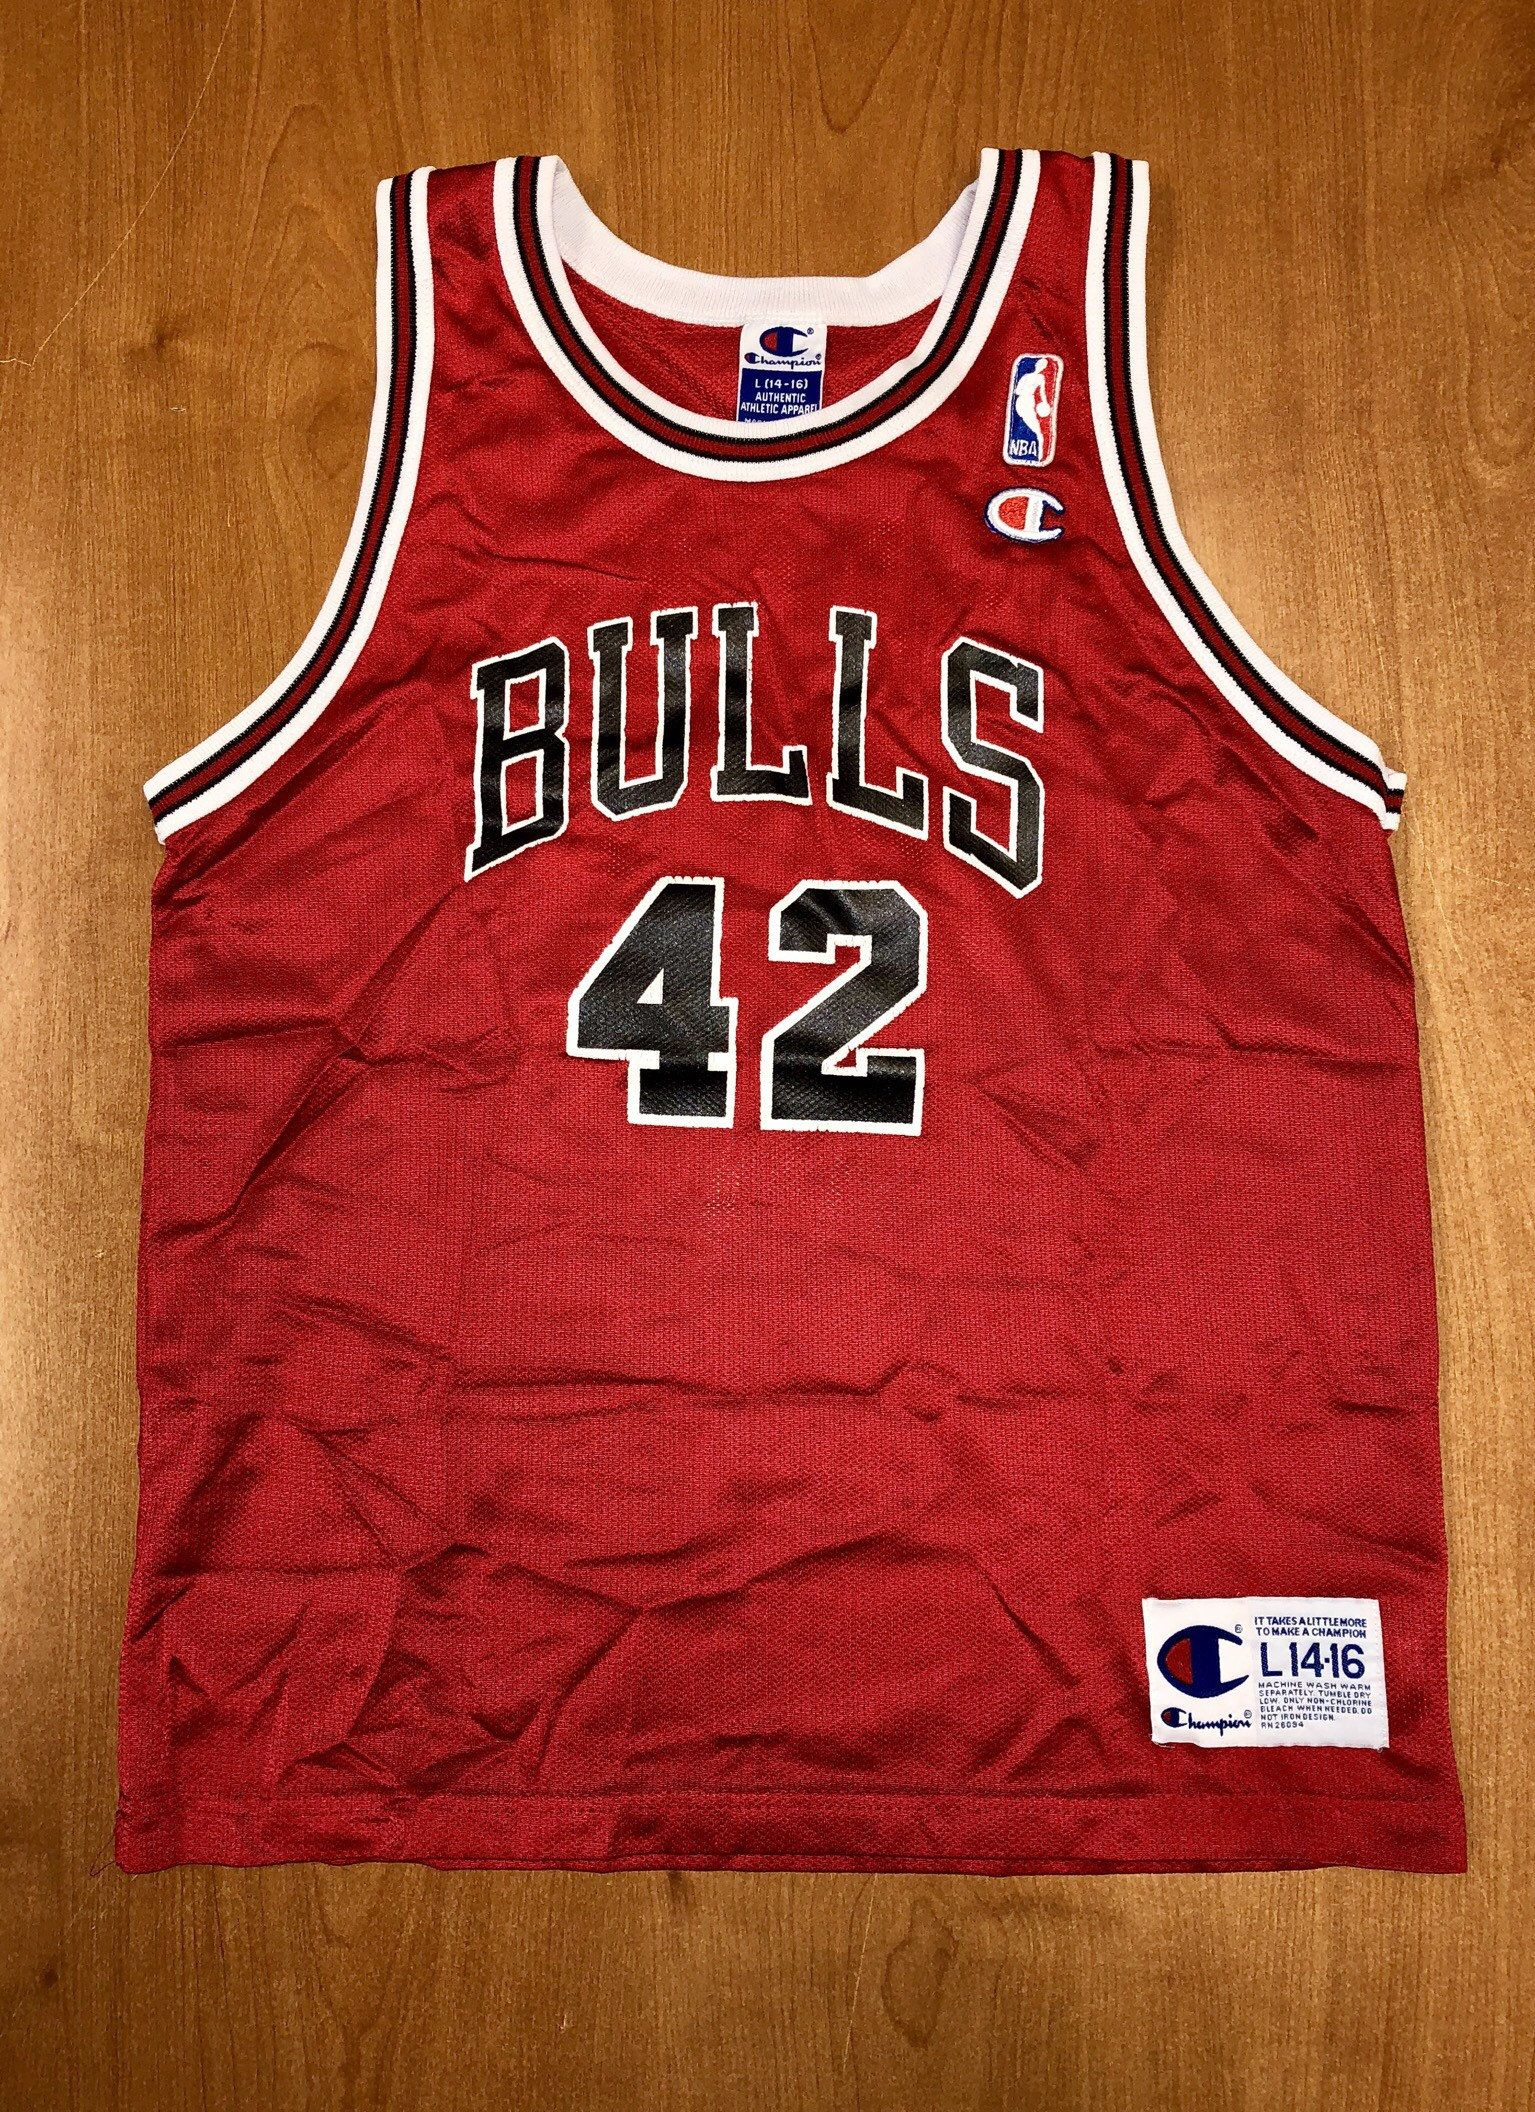 ee11ba3339e Vintage 1998 Elton Brand Chicago Bulls Champion Jersey Size Youth L nba  finals hat shirt scottie pippen authentic Michael Jordan duke by  BroadwayVintageLLC ...